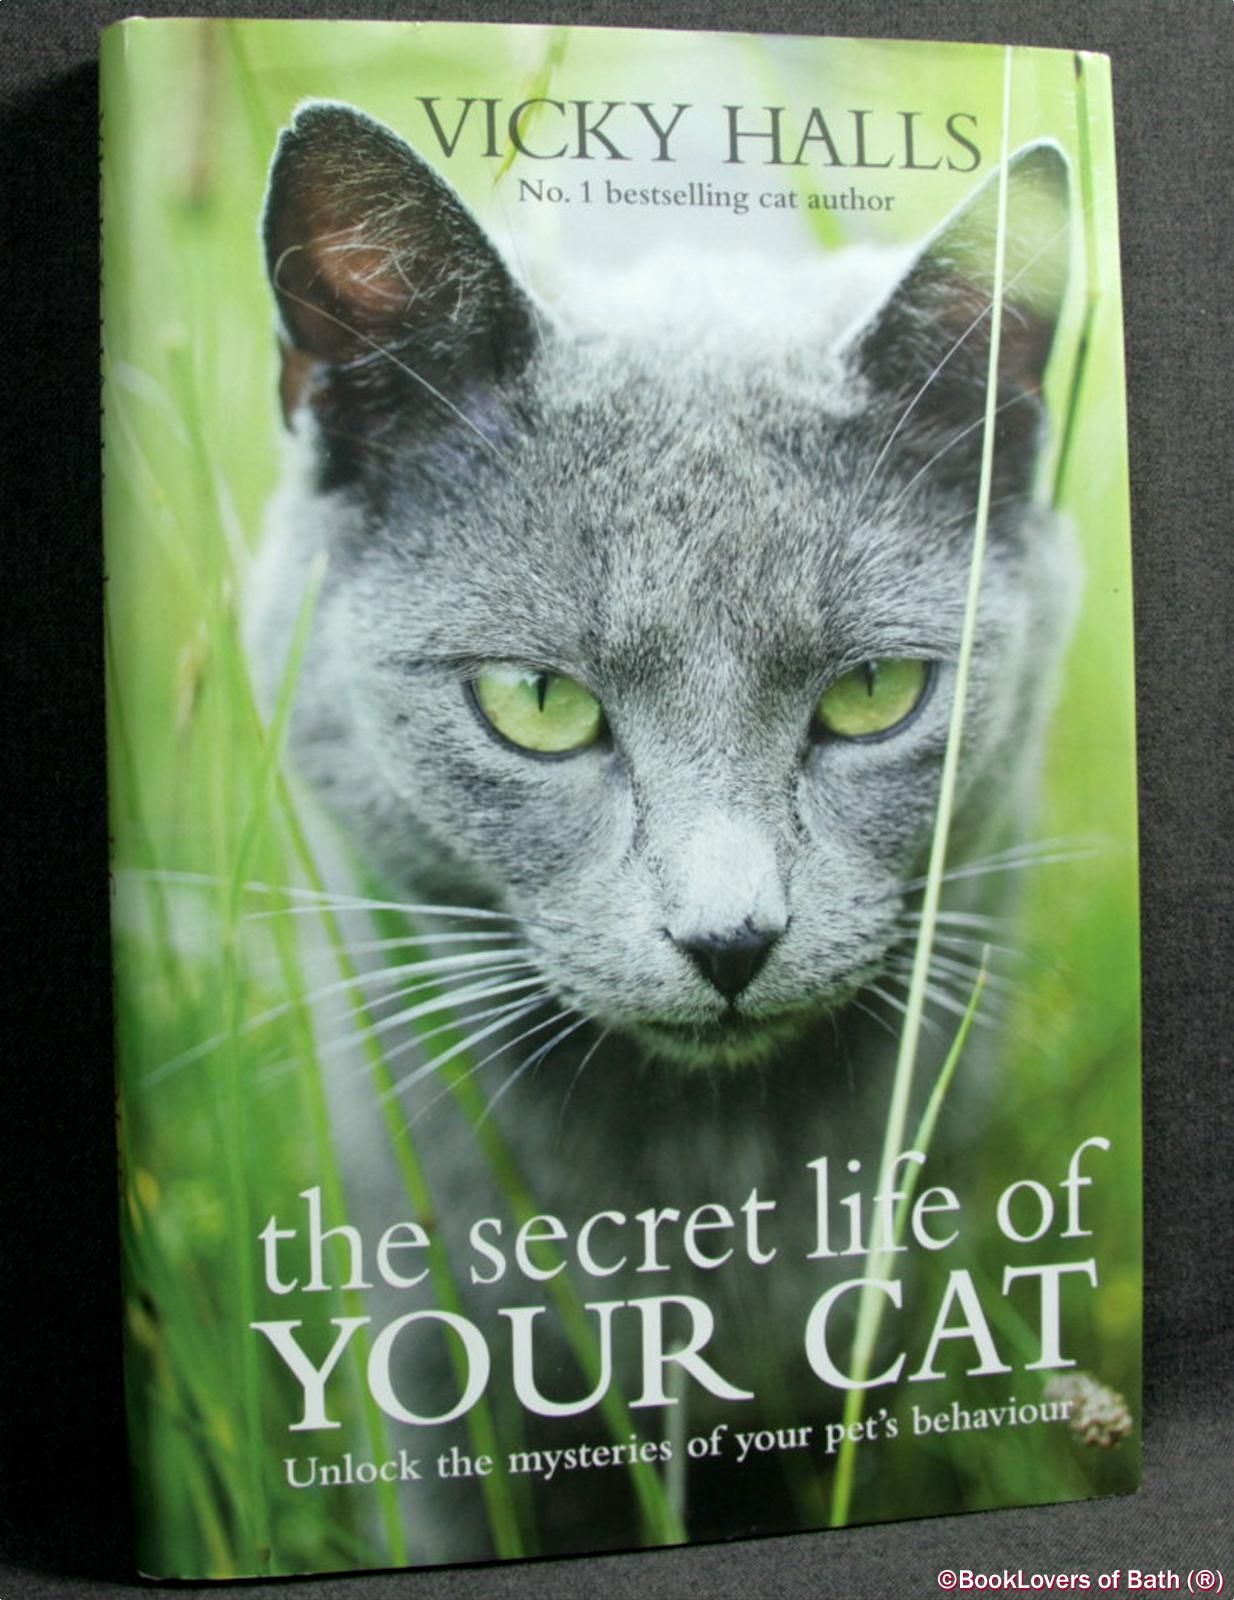 The Secret Life of Your Cat: Unlock the Mysteries of Your Cat's Behaviour - Vicky Halls